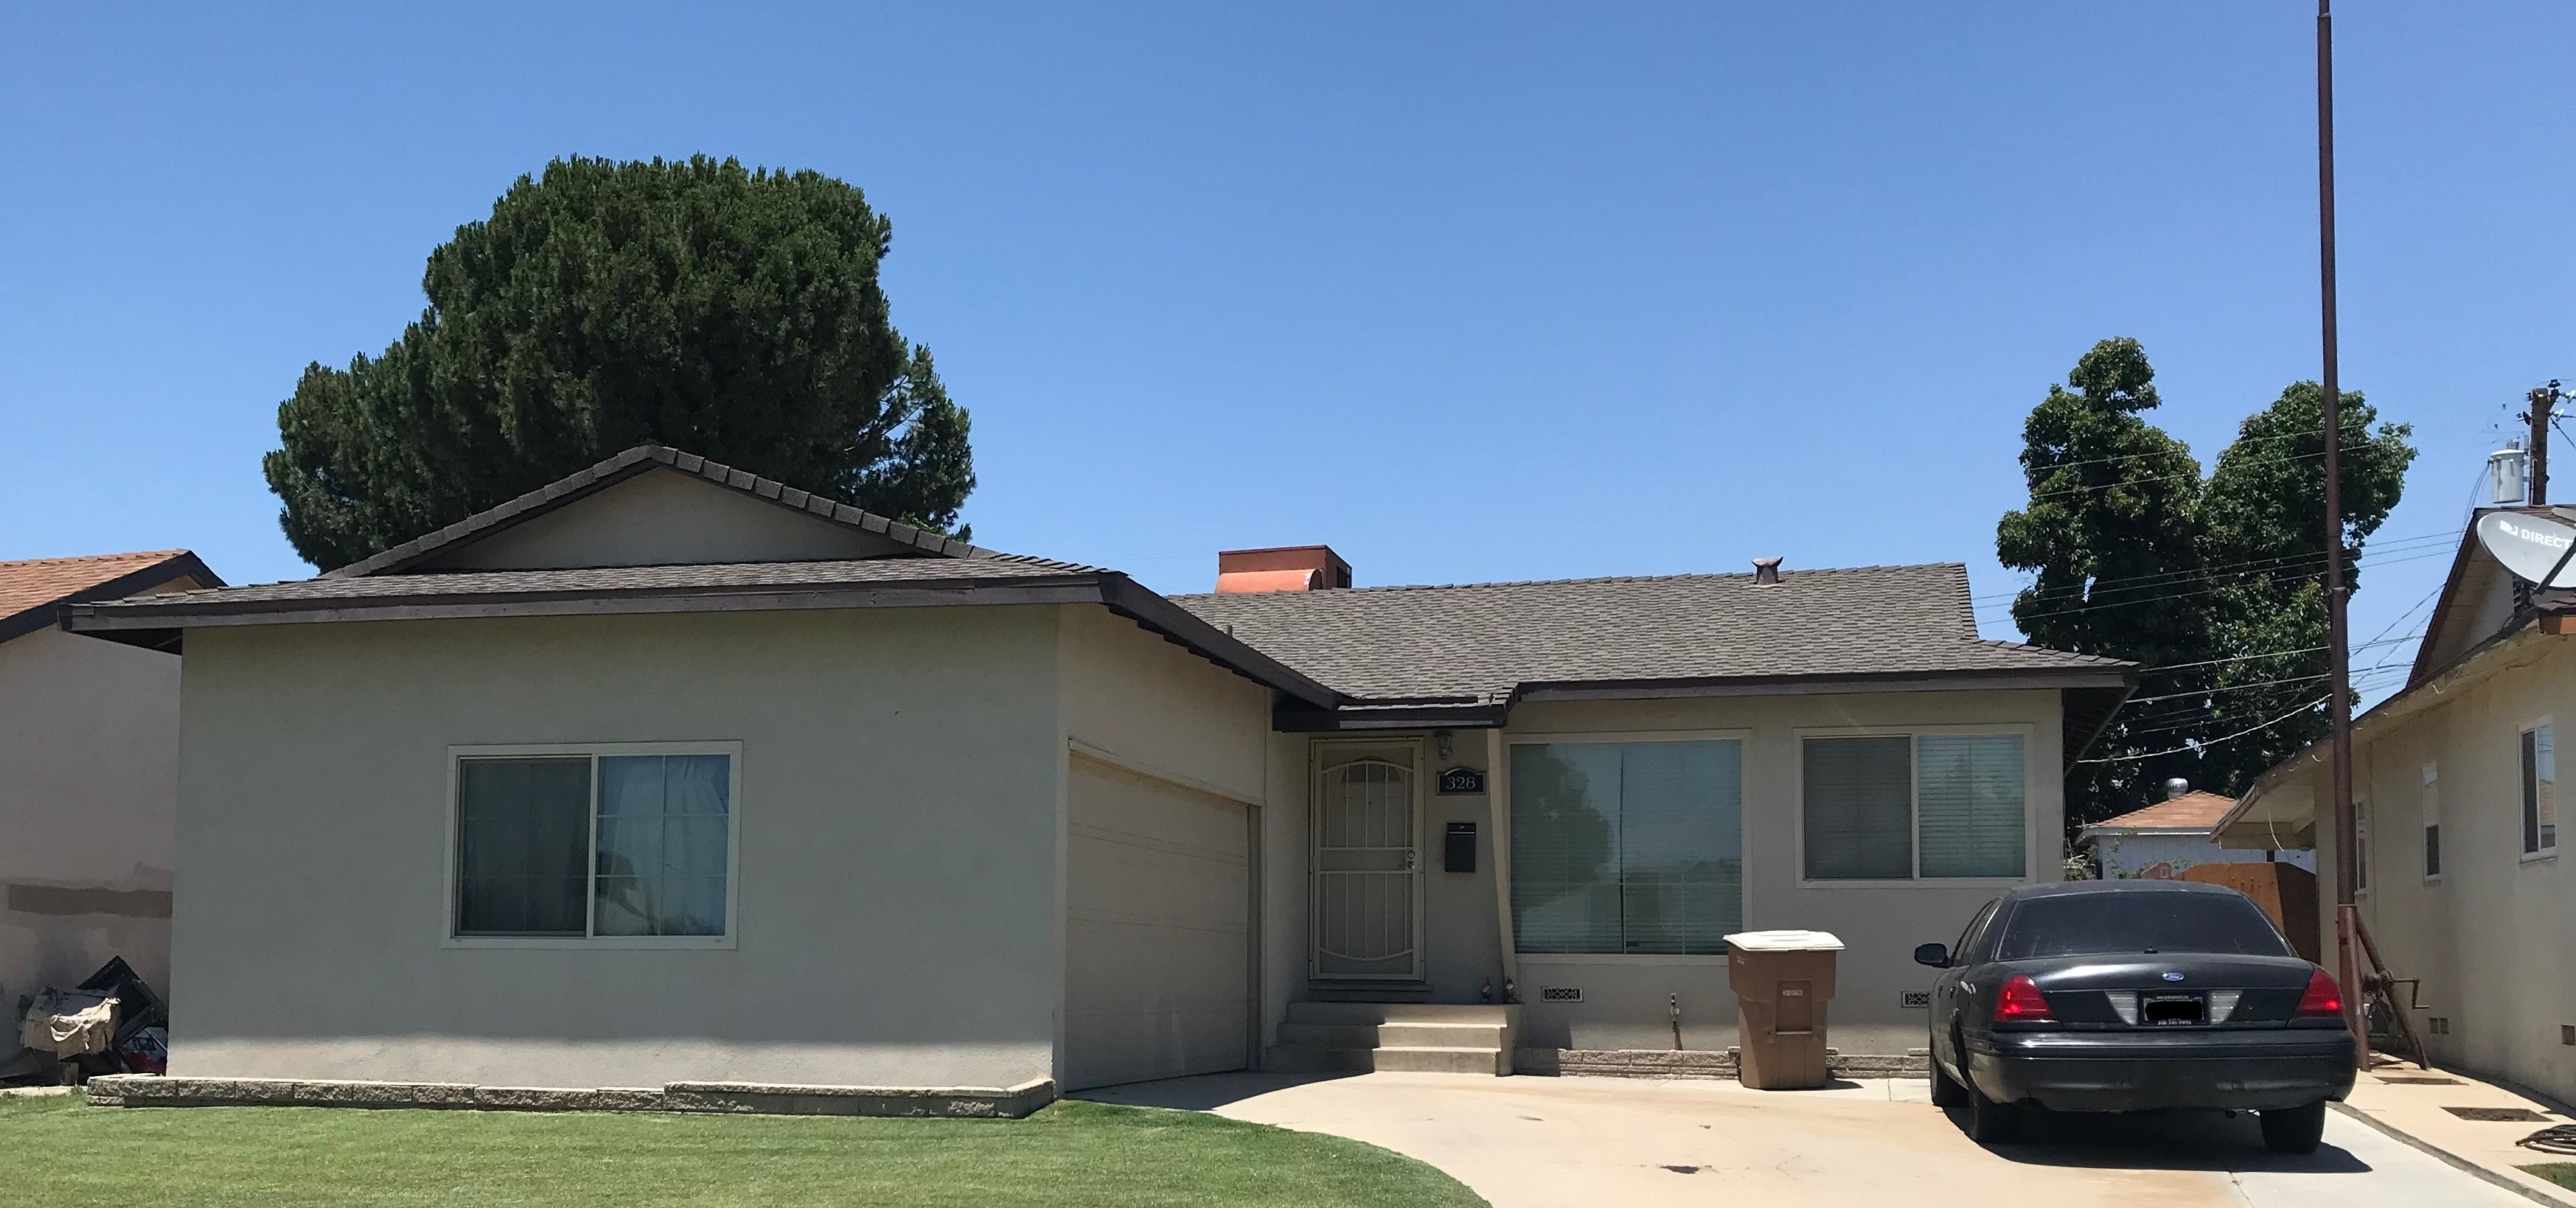 1195 328 Circle Dr Bakersfield Ca 93308 North Of The